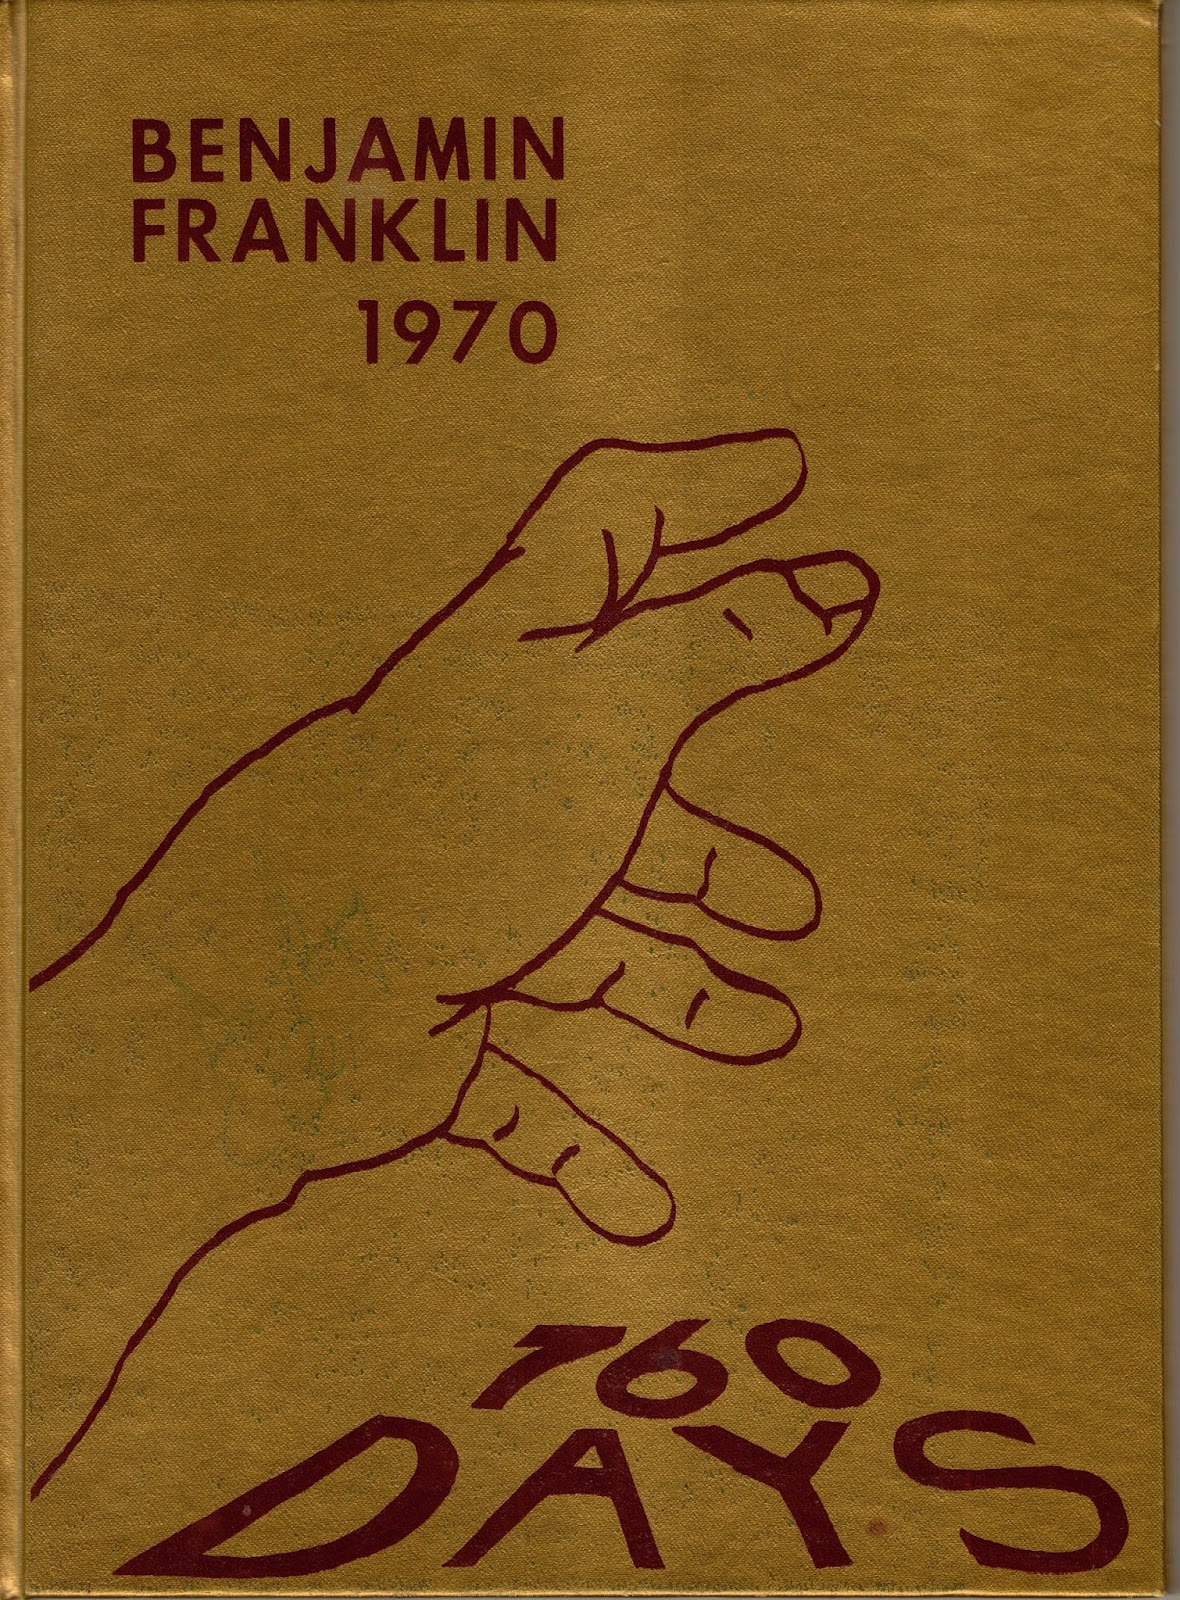 1970 Yearbook Cover.jpg